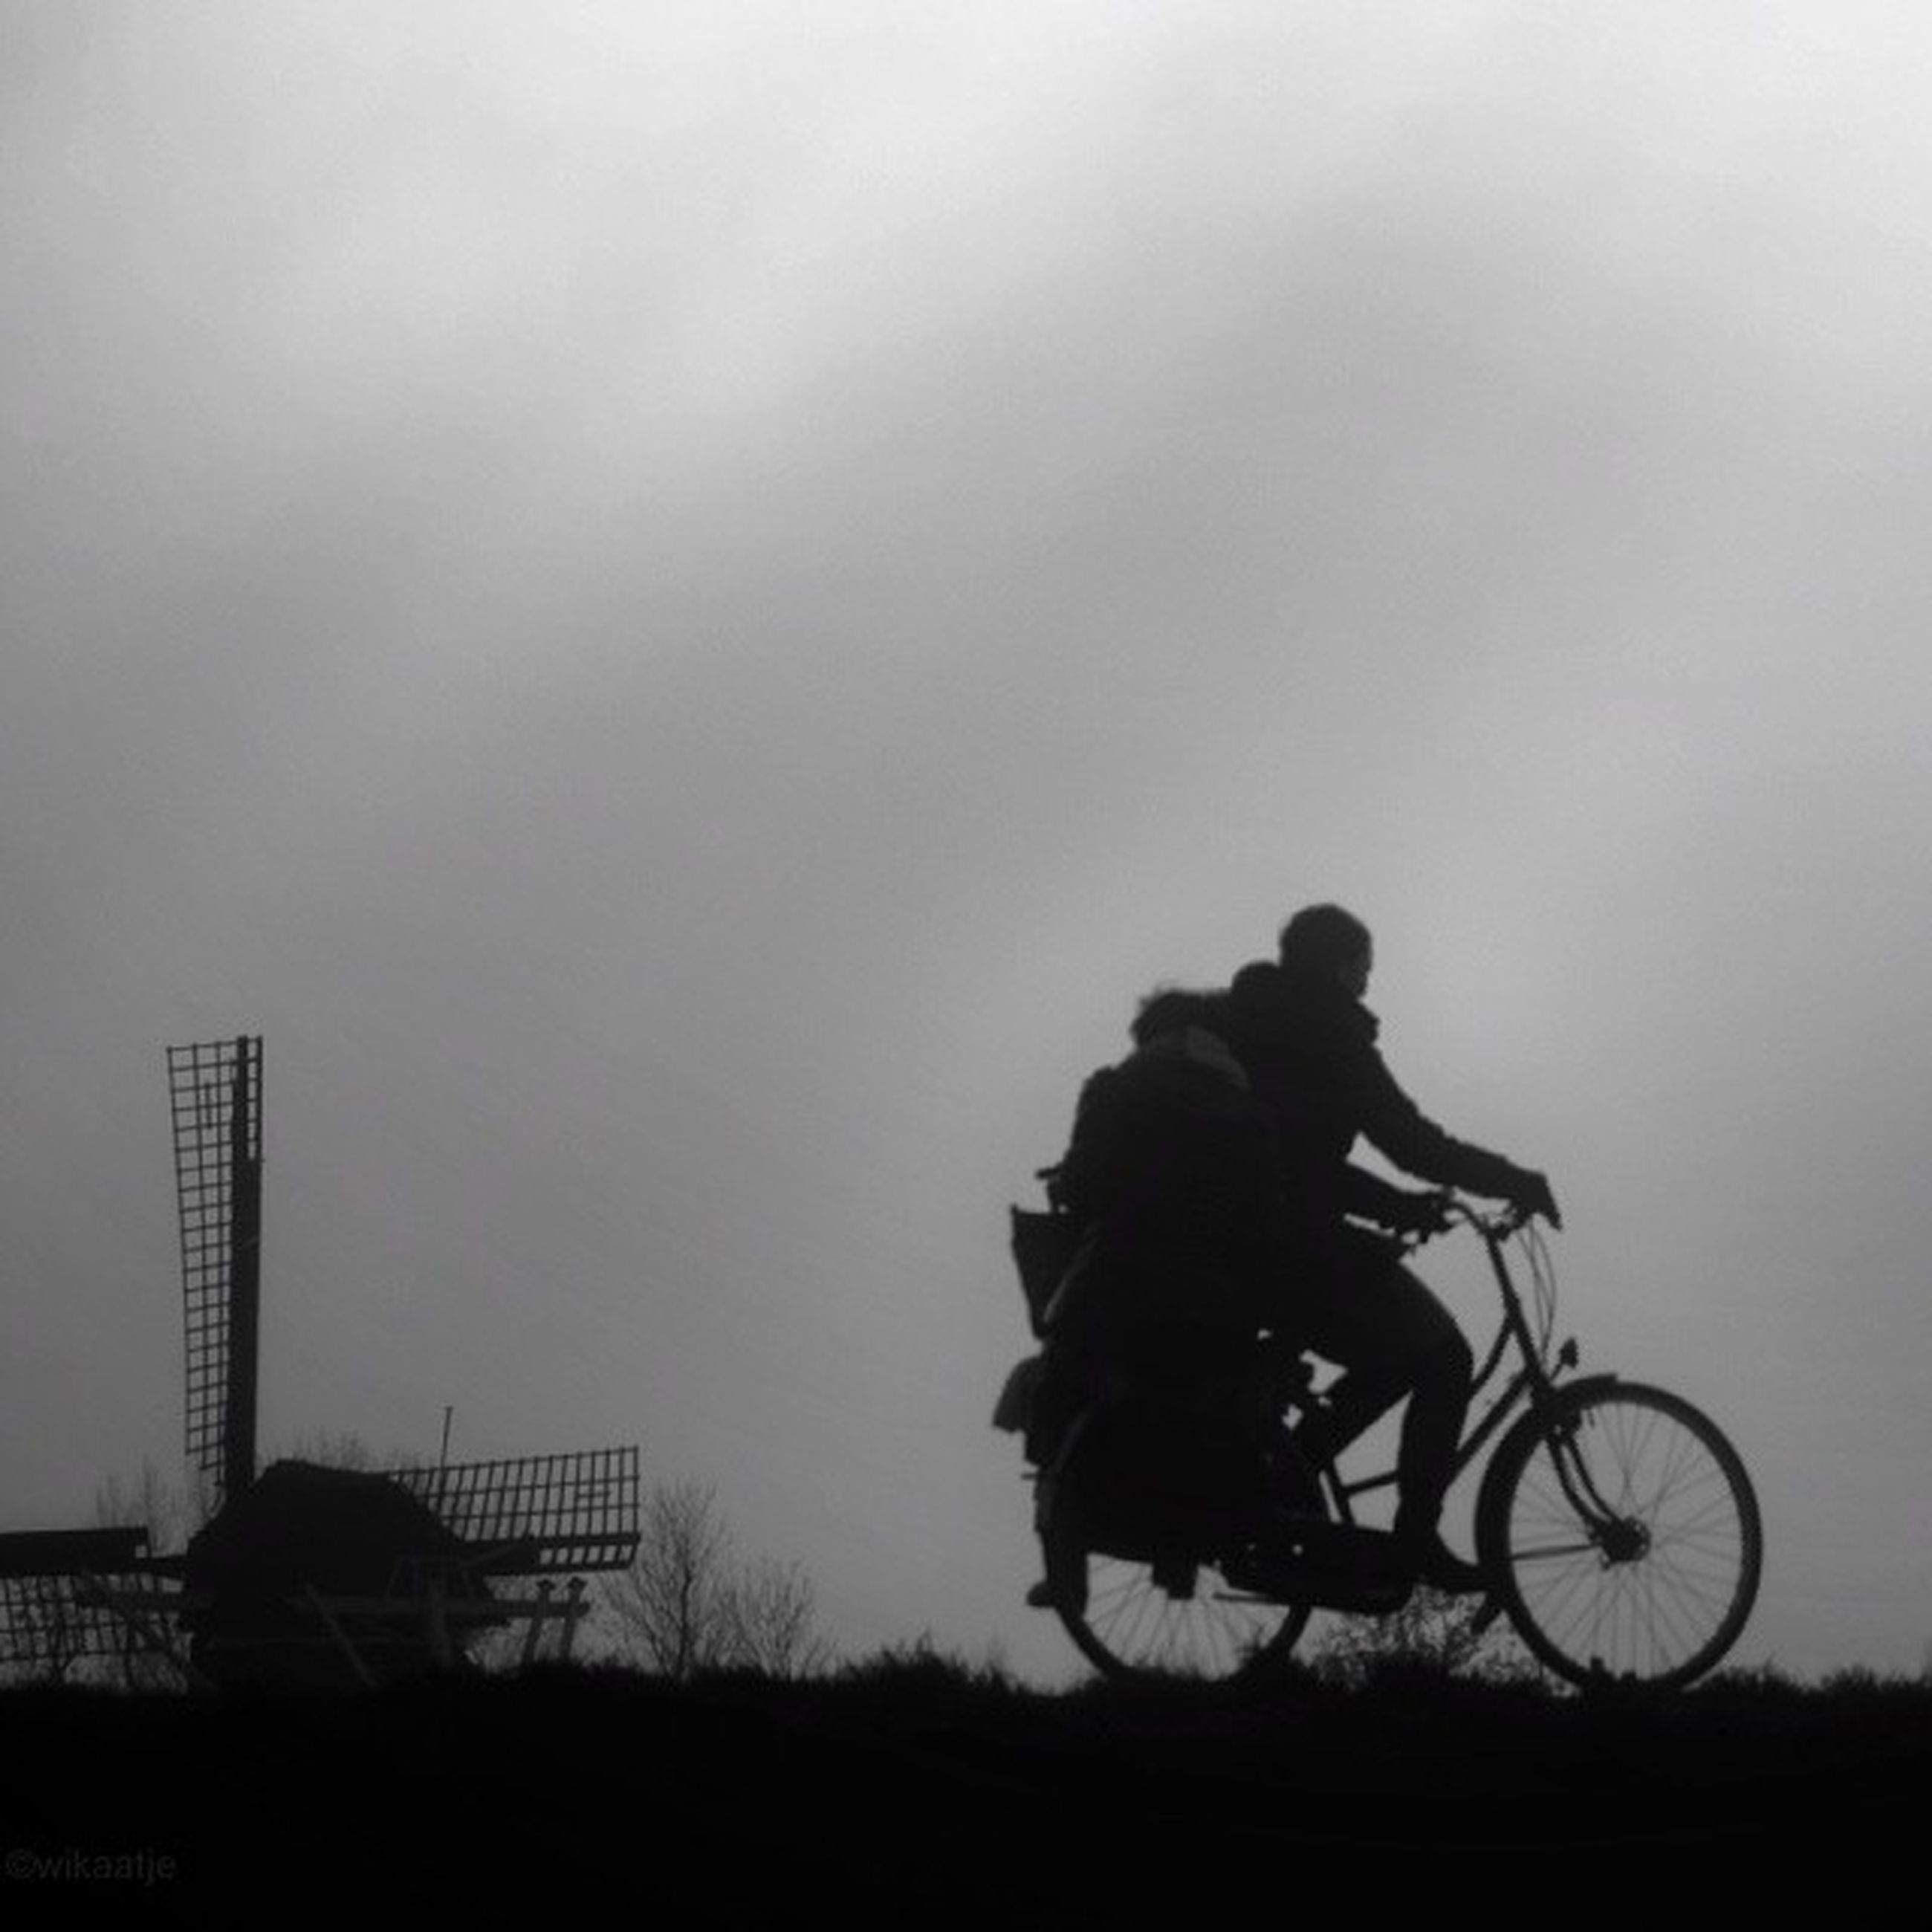 bicycle, men, land vehicle, riding, lifestyles, leisure activity, mode of transport, transportation, silhouette, full length, cycling, copy space, sky, side view, rear view, togetherness